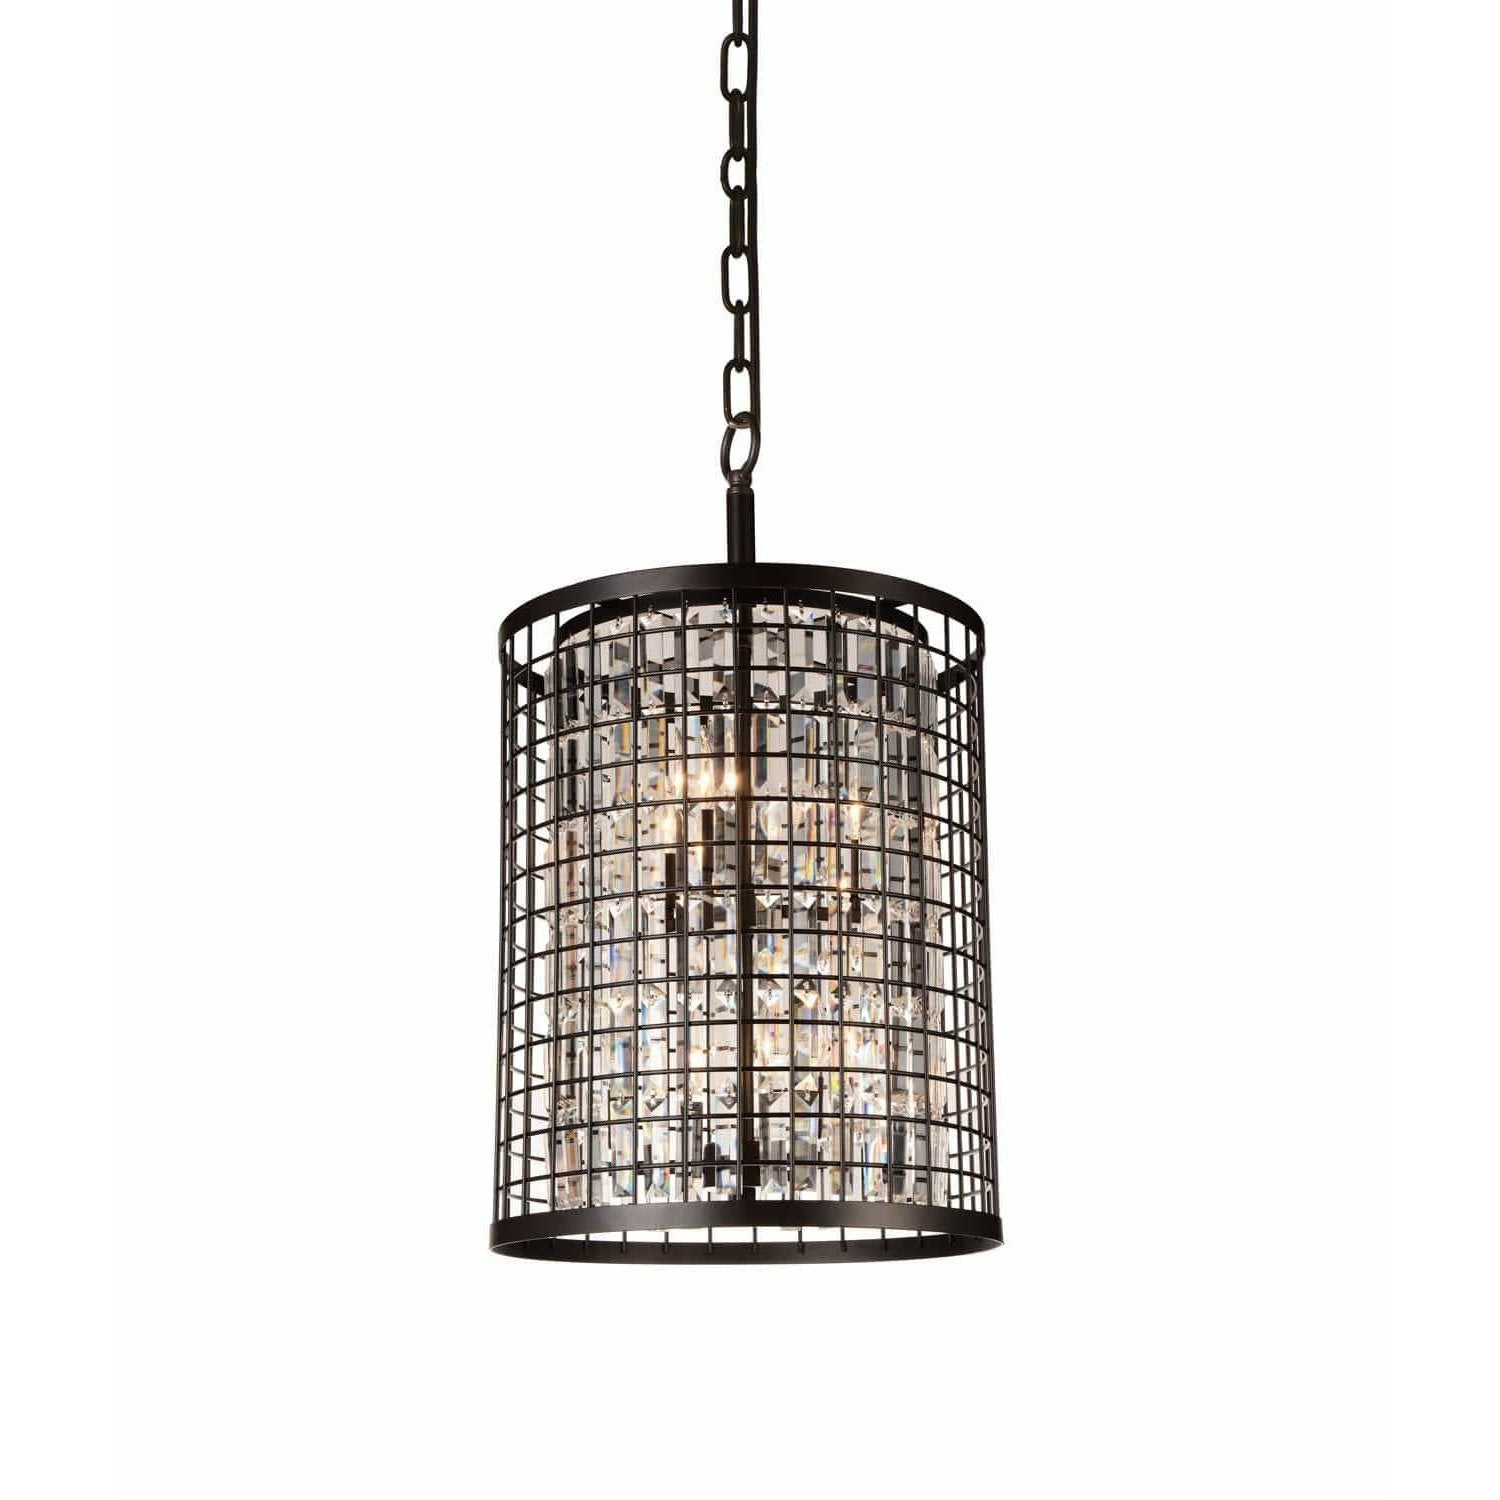 CWI Lighting Chandeliers Brown / K9 Clear Meghna 6 Light Up Chandelier with Brown finish by CWI Lighting 9697P17-6-192